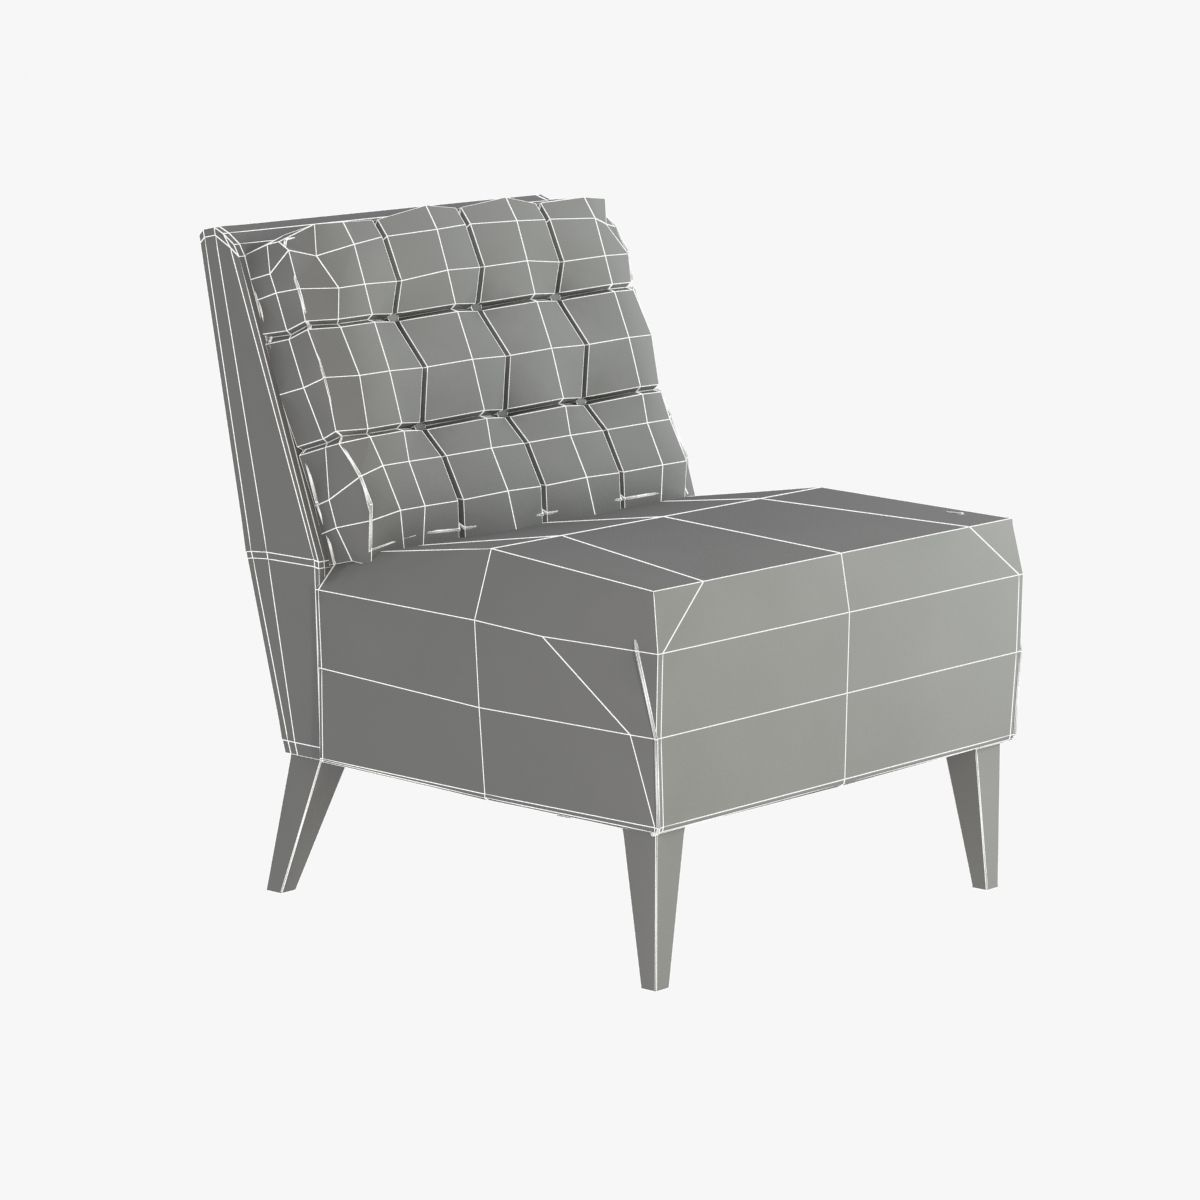 Hamptons Lounge Hampton Lounge Chair 3d Model Max Obj 3ds Fbx Cgtrader